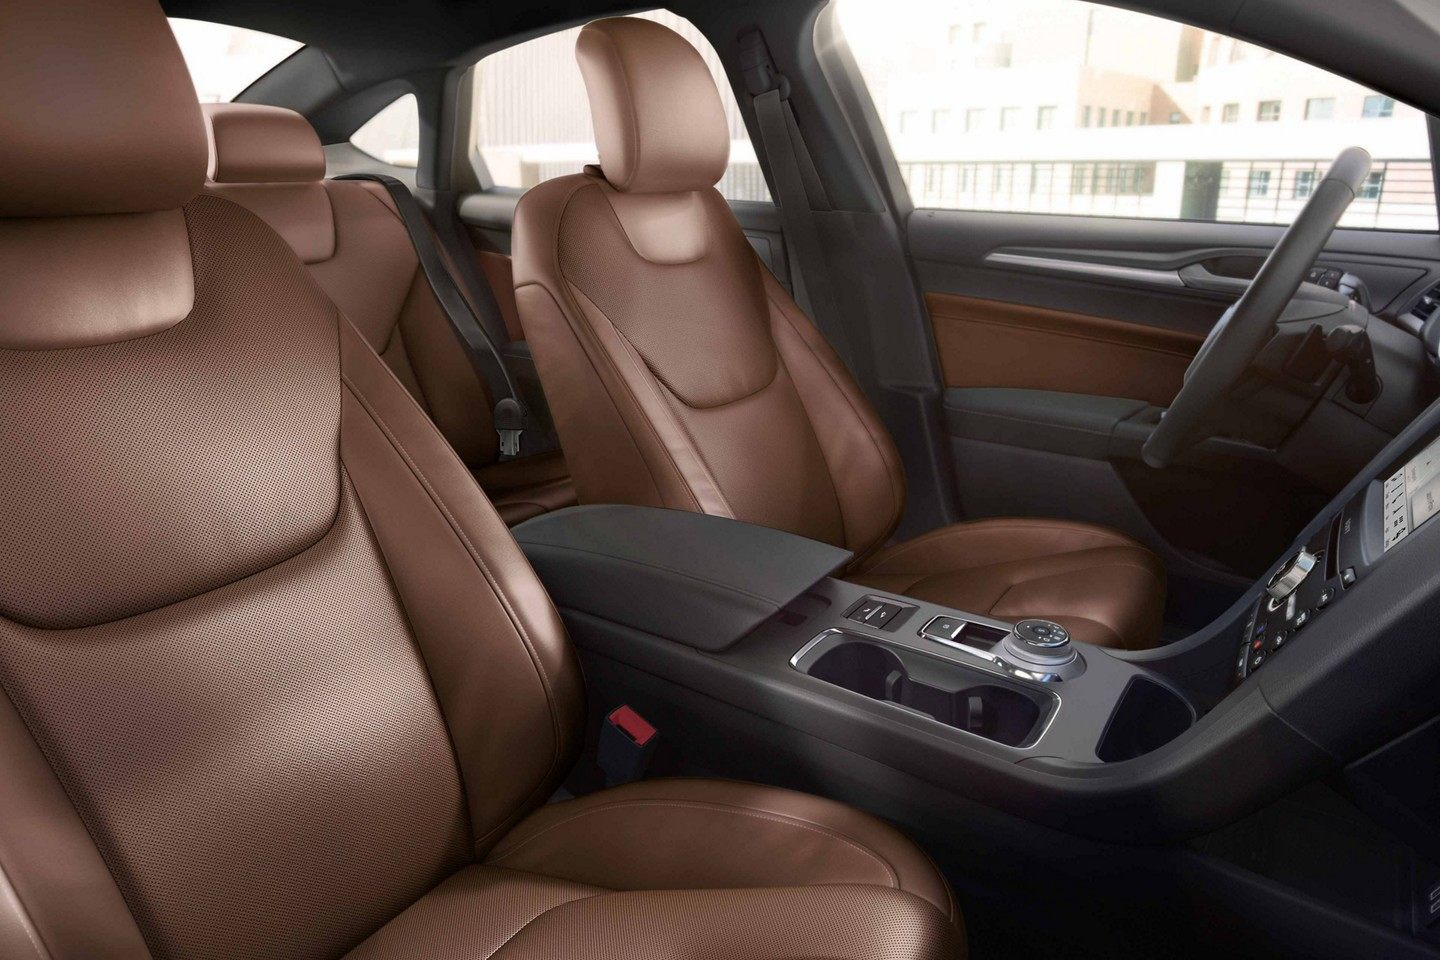 2019 Ford Fusion Front Seating Interior.jpeg